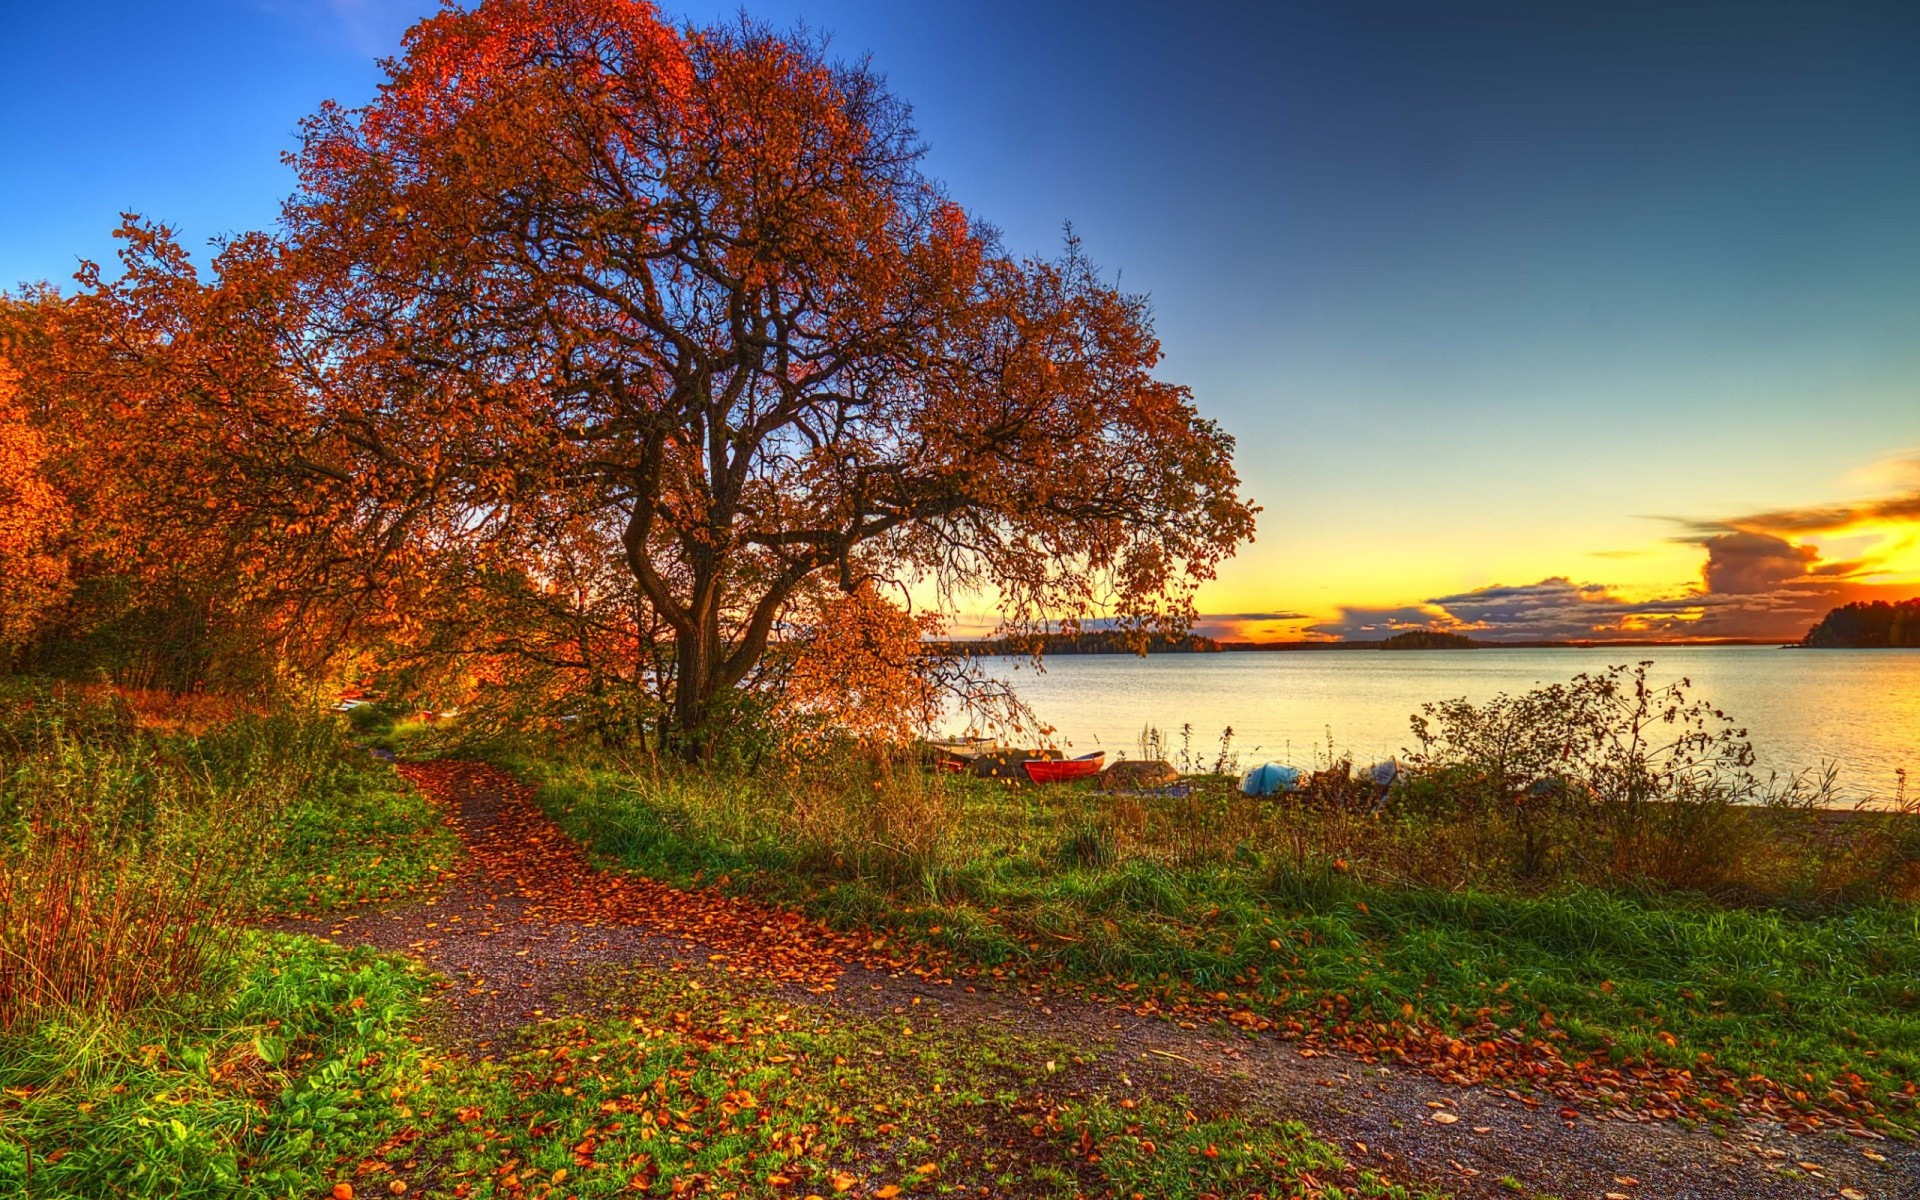 Autumn Scenery Android Wallpapers For Free